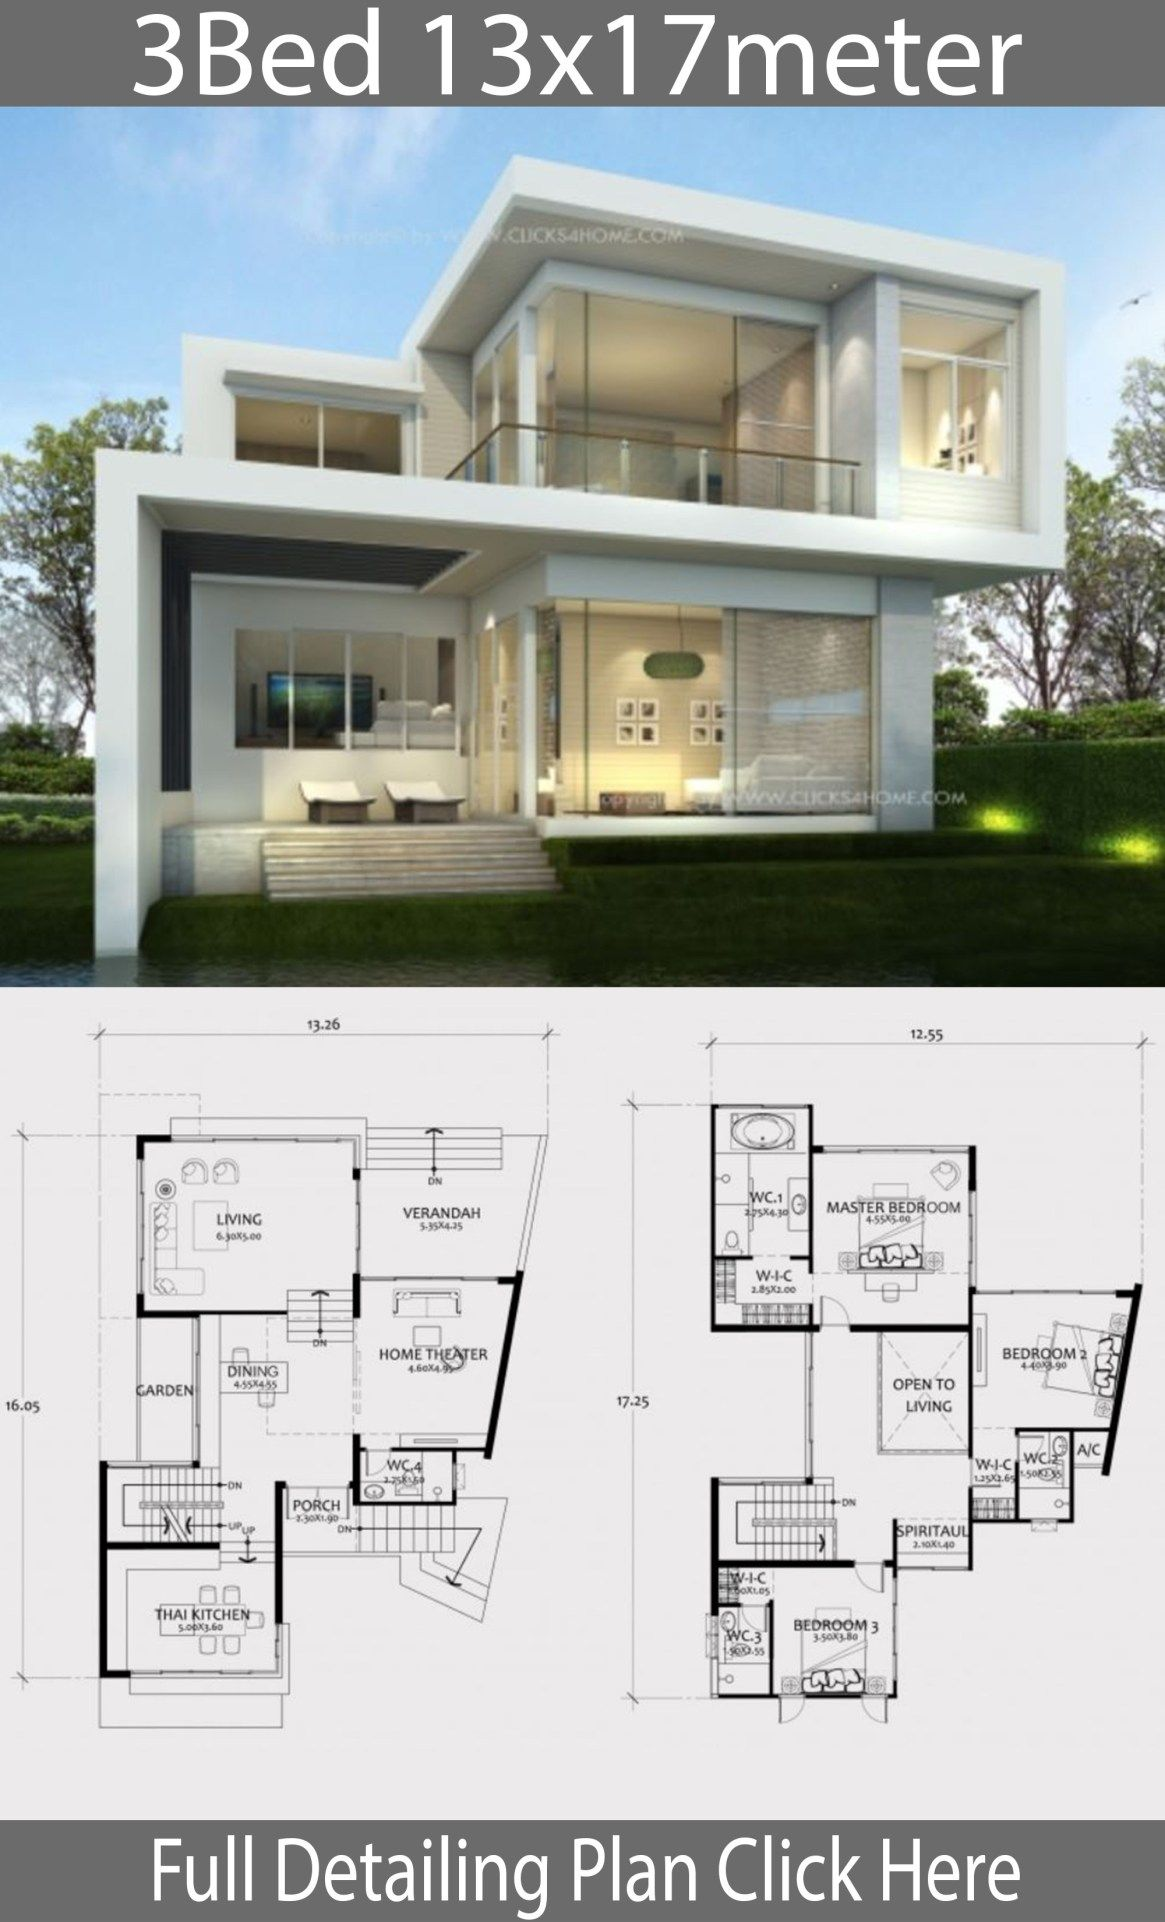 Home Design Plan 13x17m With 3 Bedrooms Home Design With Plansearch House Layout Plans Architectural House Plans House Architecture Design